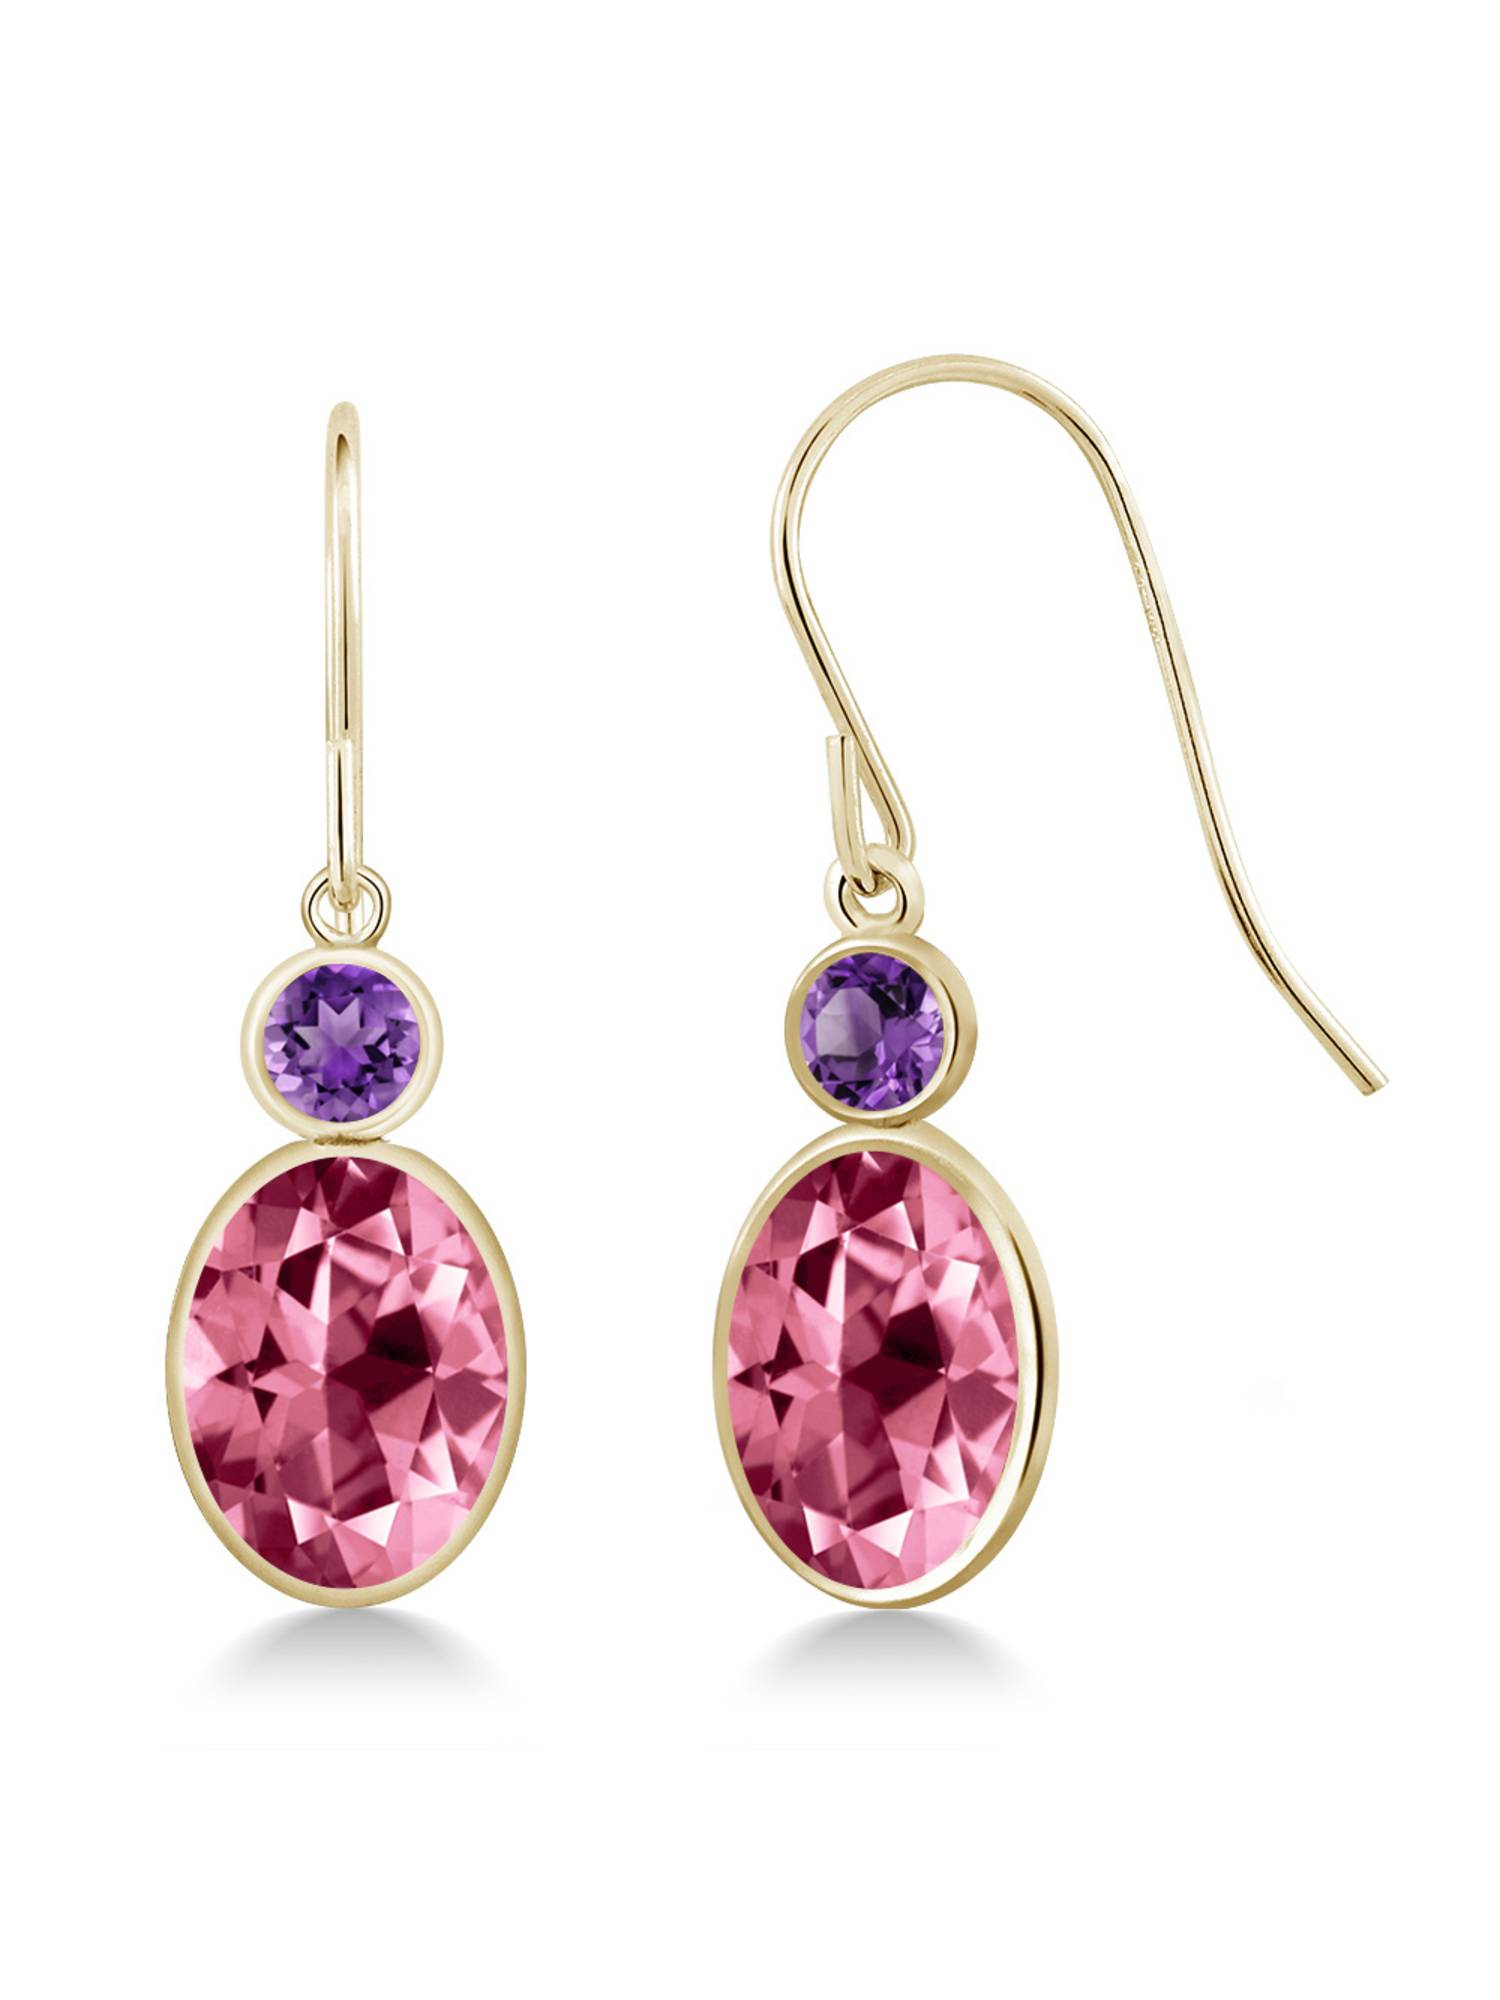 14K Yellow Gold Earrings Amethyst Set with Oval Pink Topaz from Swarovski by